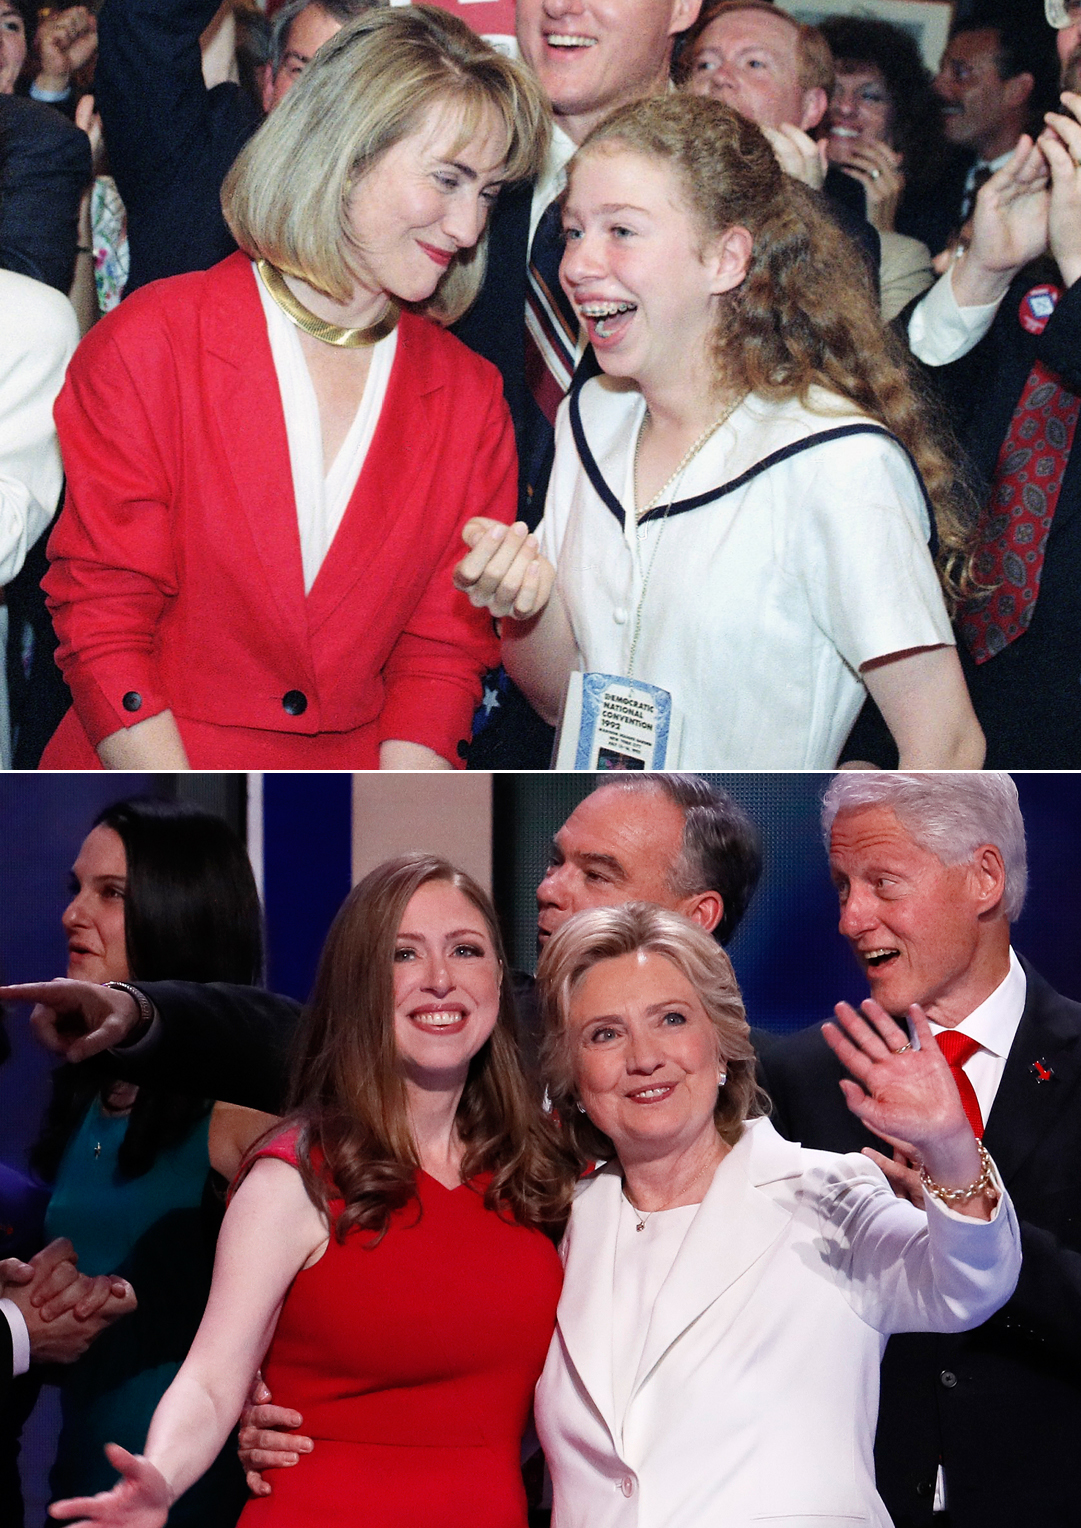 Chelsea linton weddings chelsealintonweddings com read more http -  With Hillary Sporting A White Pantsuit For Her Speech On Thursday And Chelsea In The Red Dress Clearly The Mother Daughter Duo Talk To Each Other About